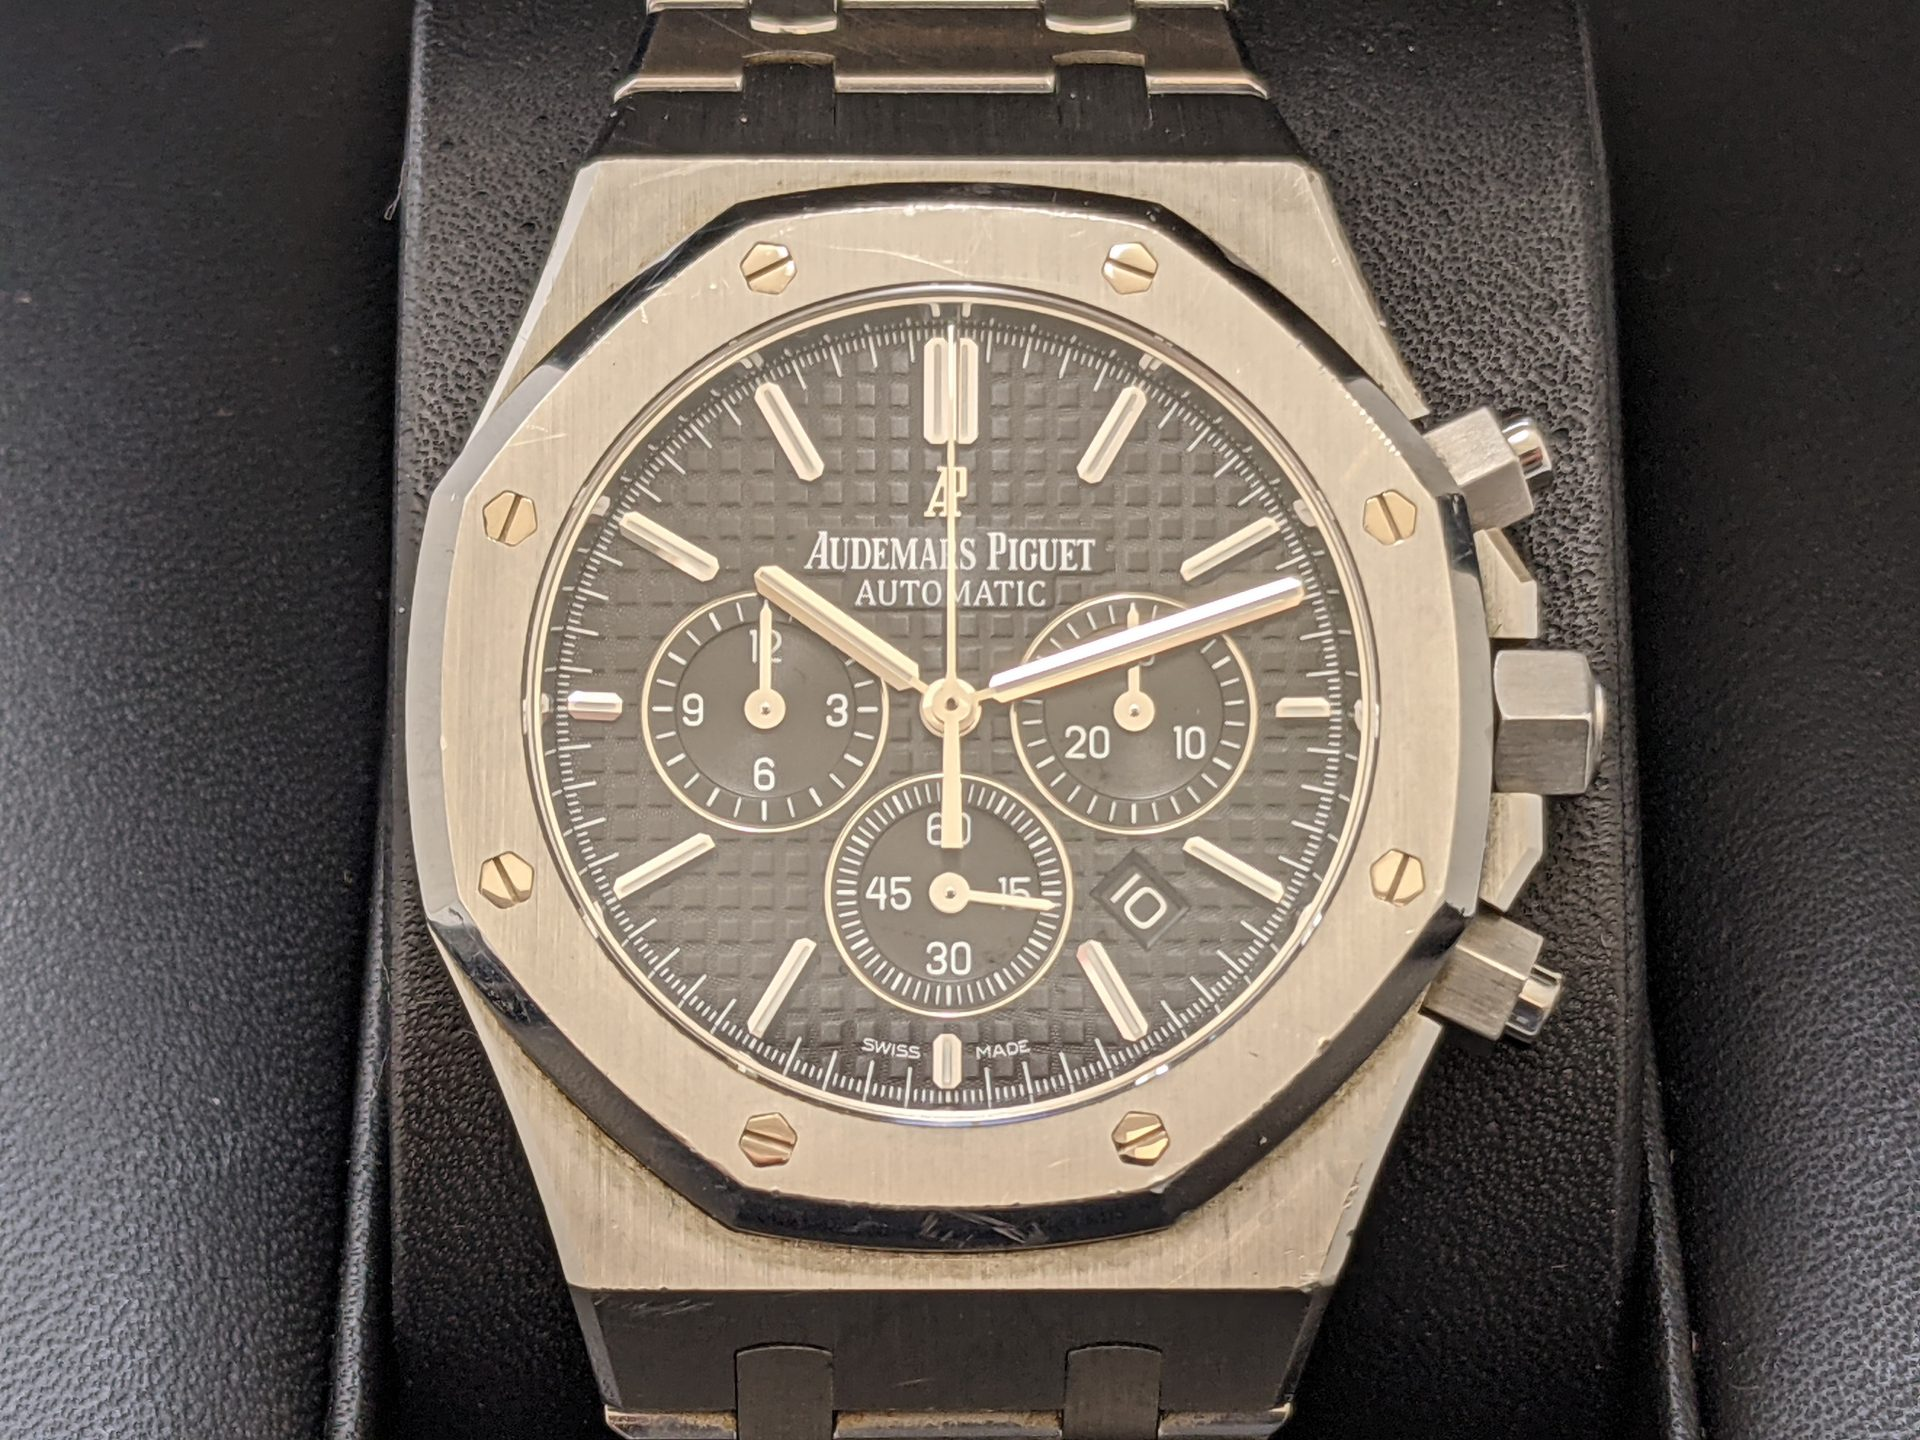 AUDEMARS PIGUET ROYAL OAK CHRONOGRAPHAUDEMARS PIGUET ROYAL OAK CHRONOGRAPH